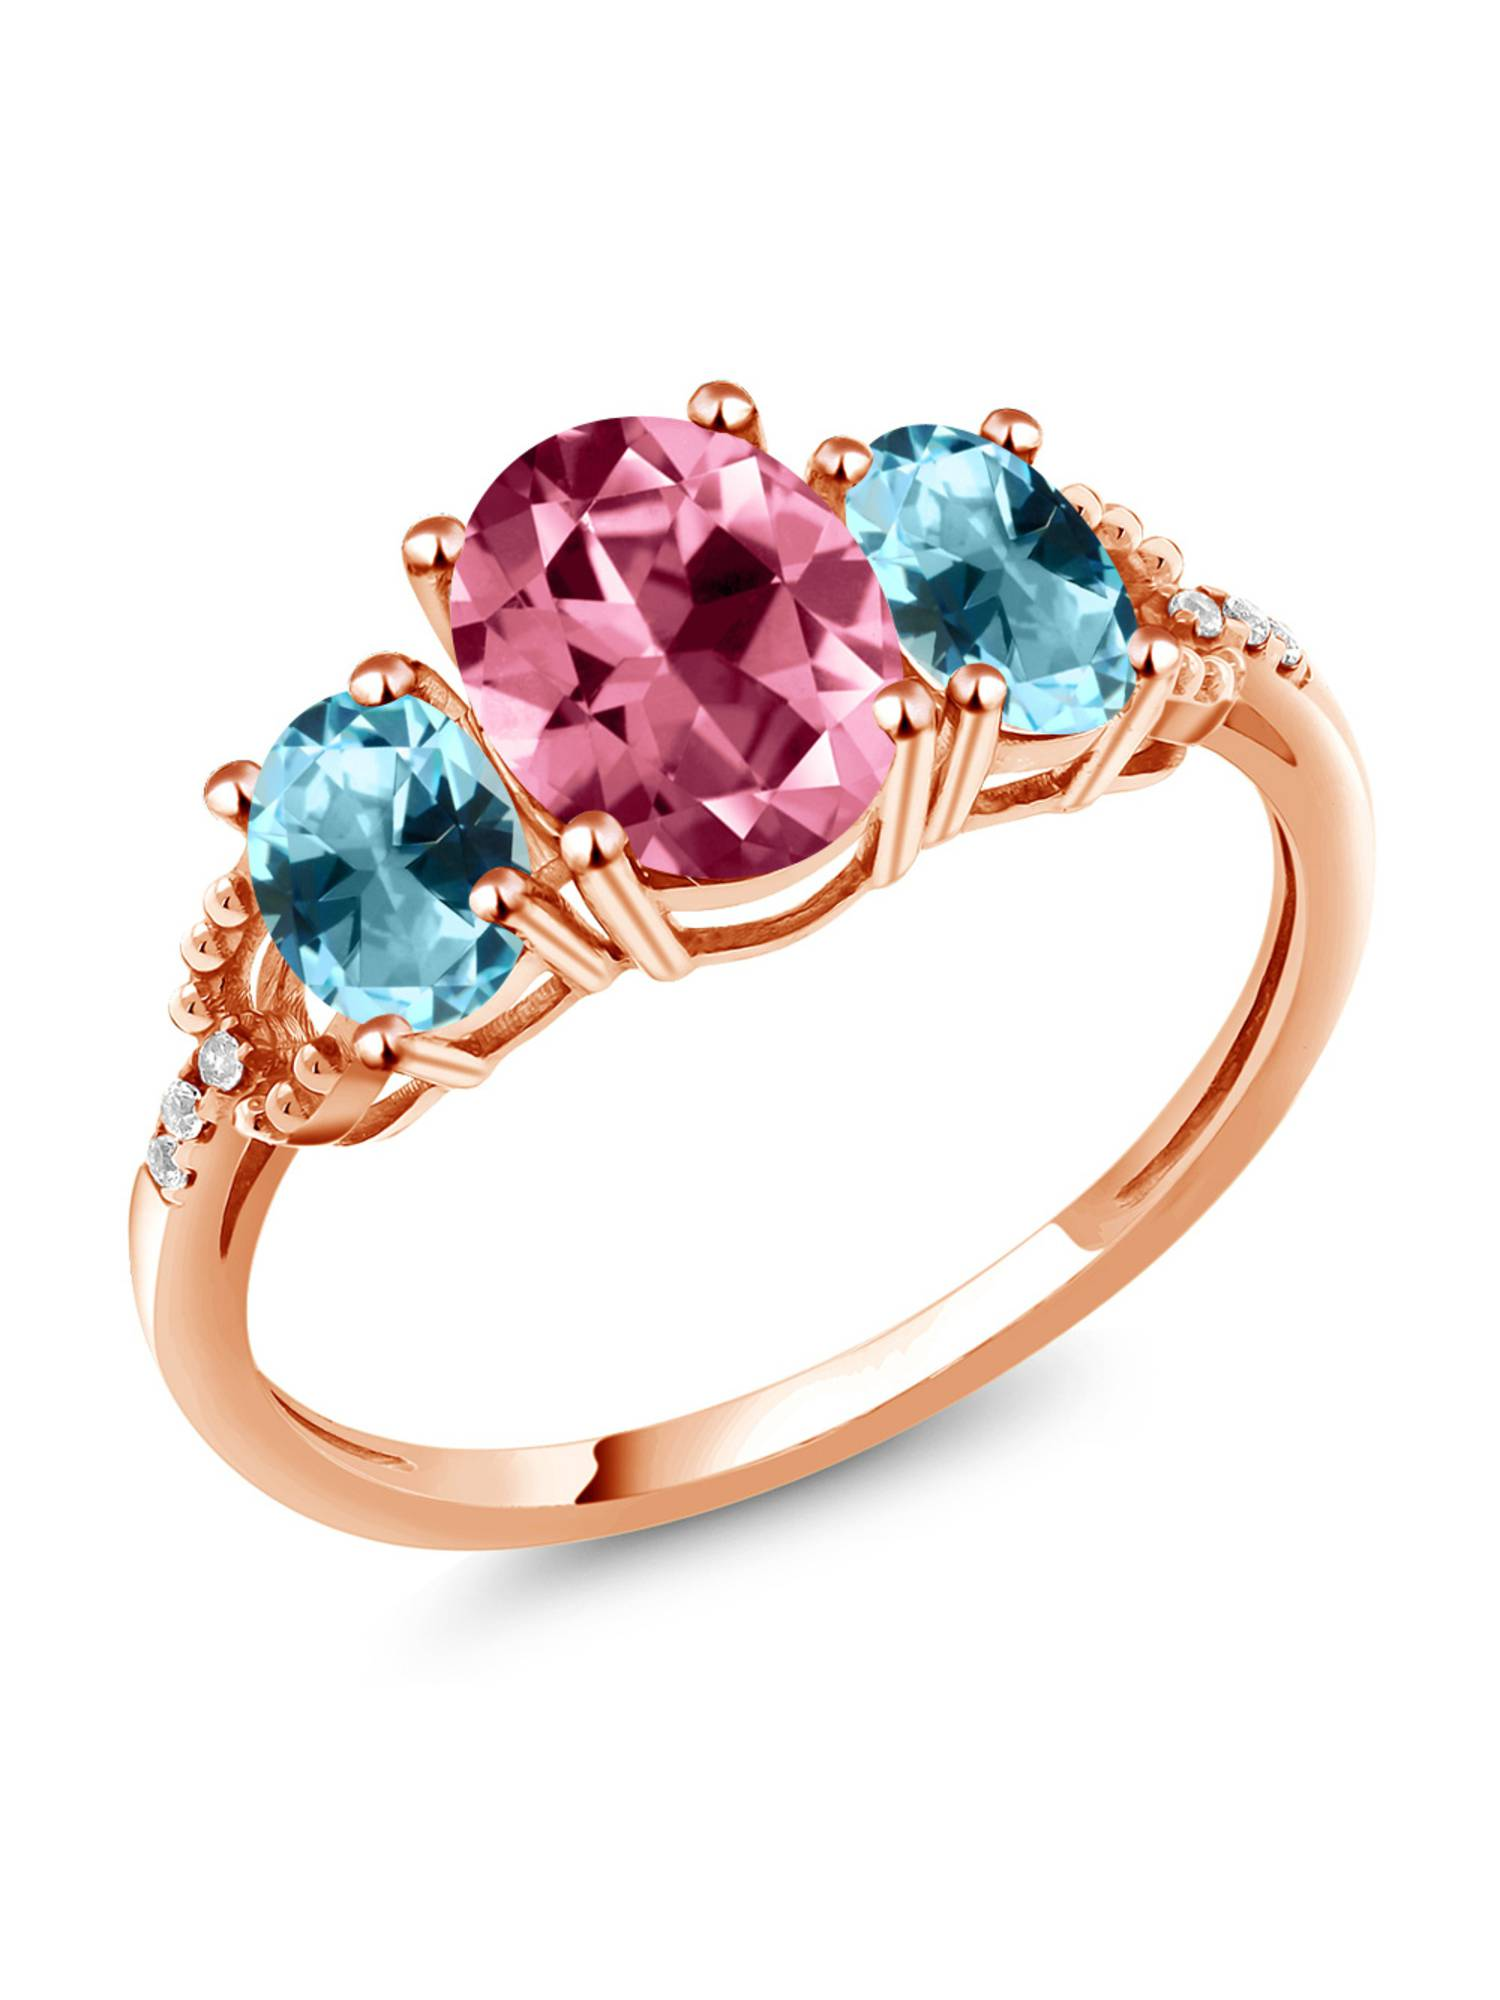 10K Rose Gold 3-Stone Diamond Accent Ring 8x6mm Set w  Pink Topaz from Swarovski by